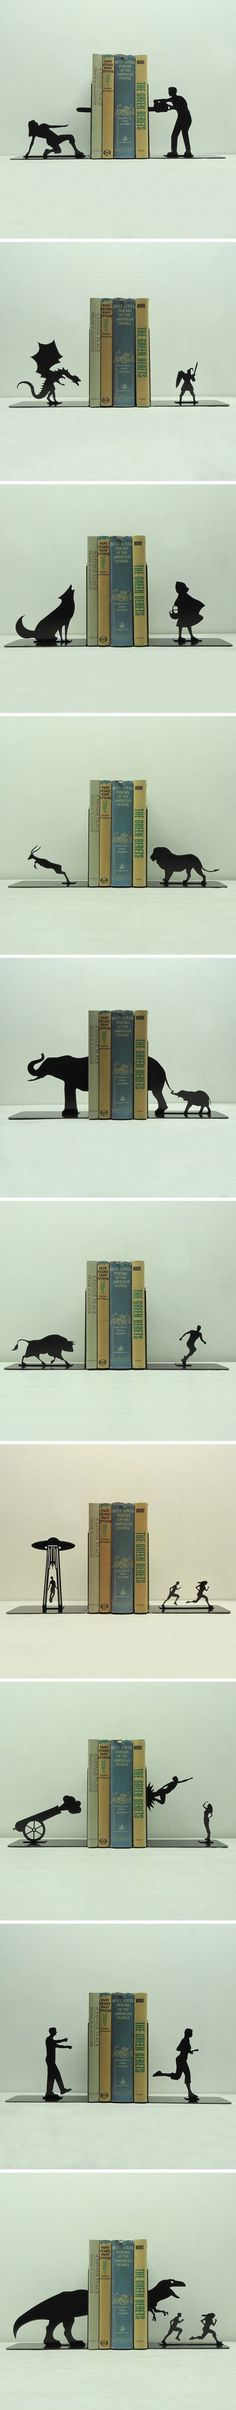 Funny - Creative Bookends - www.funny-pictures-blog.com